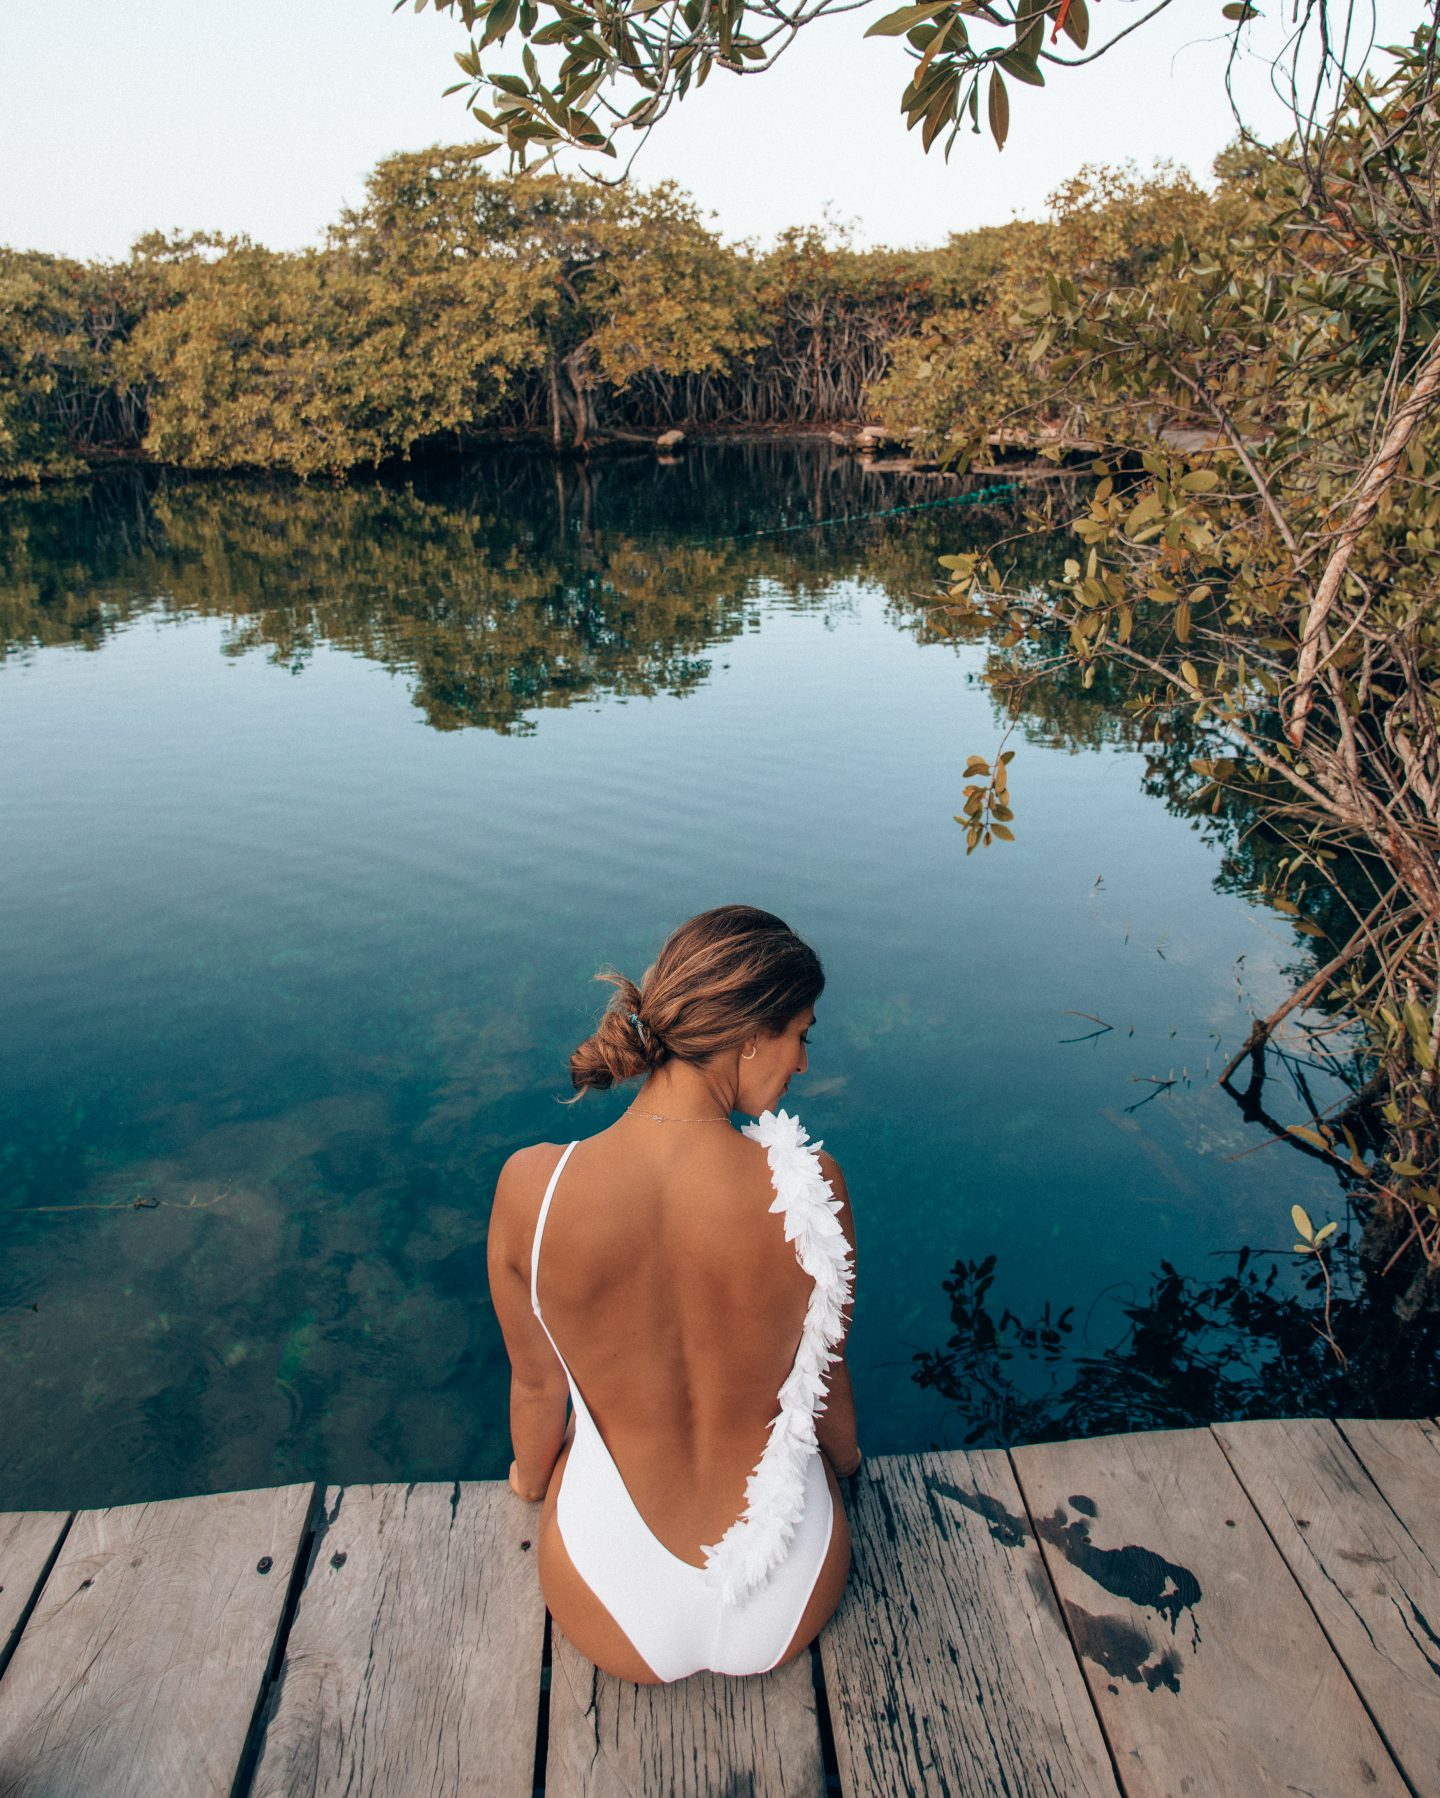 A woman sitting on the edge of a cenote in Tulum Mexico at Cenote Kape Ha